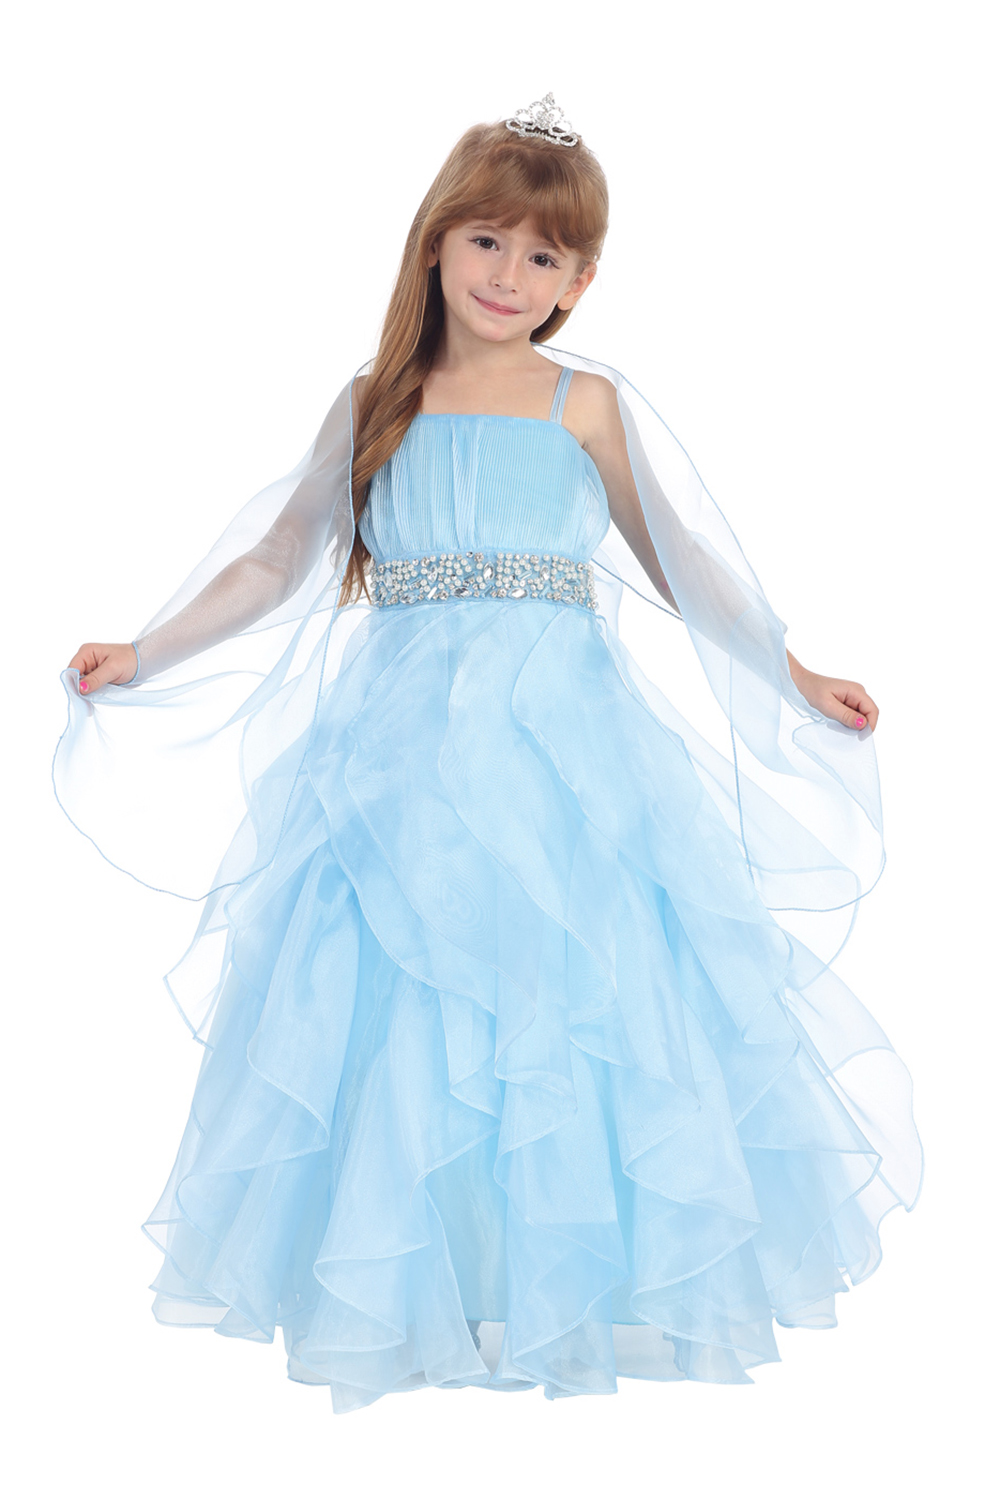 Compare Prices on Blue Flower Girl Dresses- Online Shopping/Buy ...